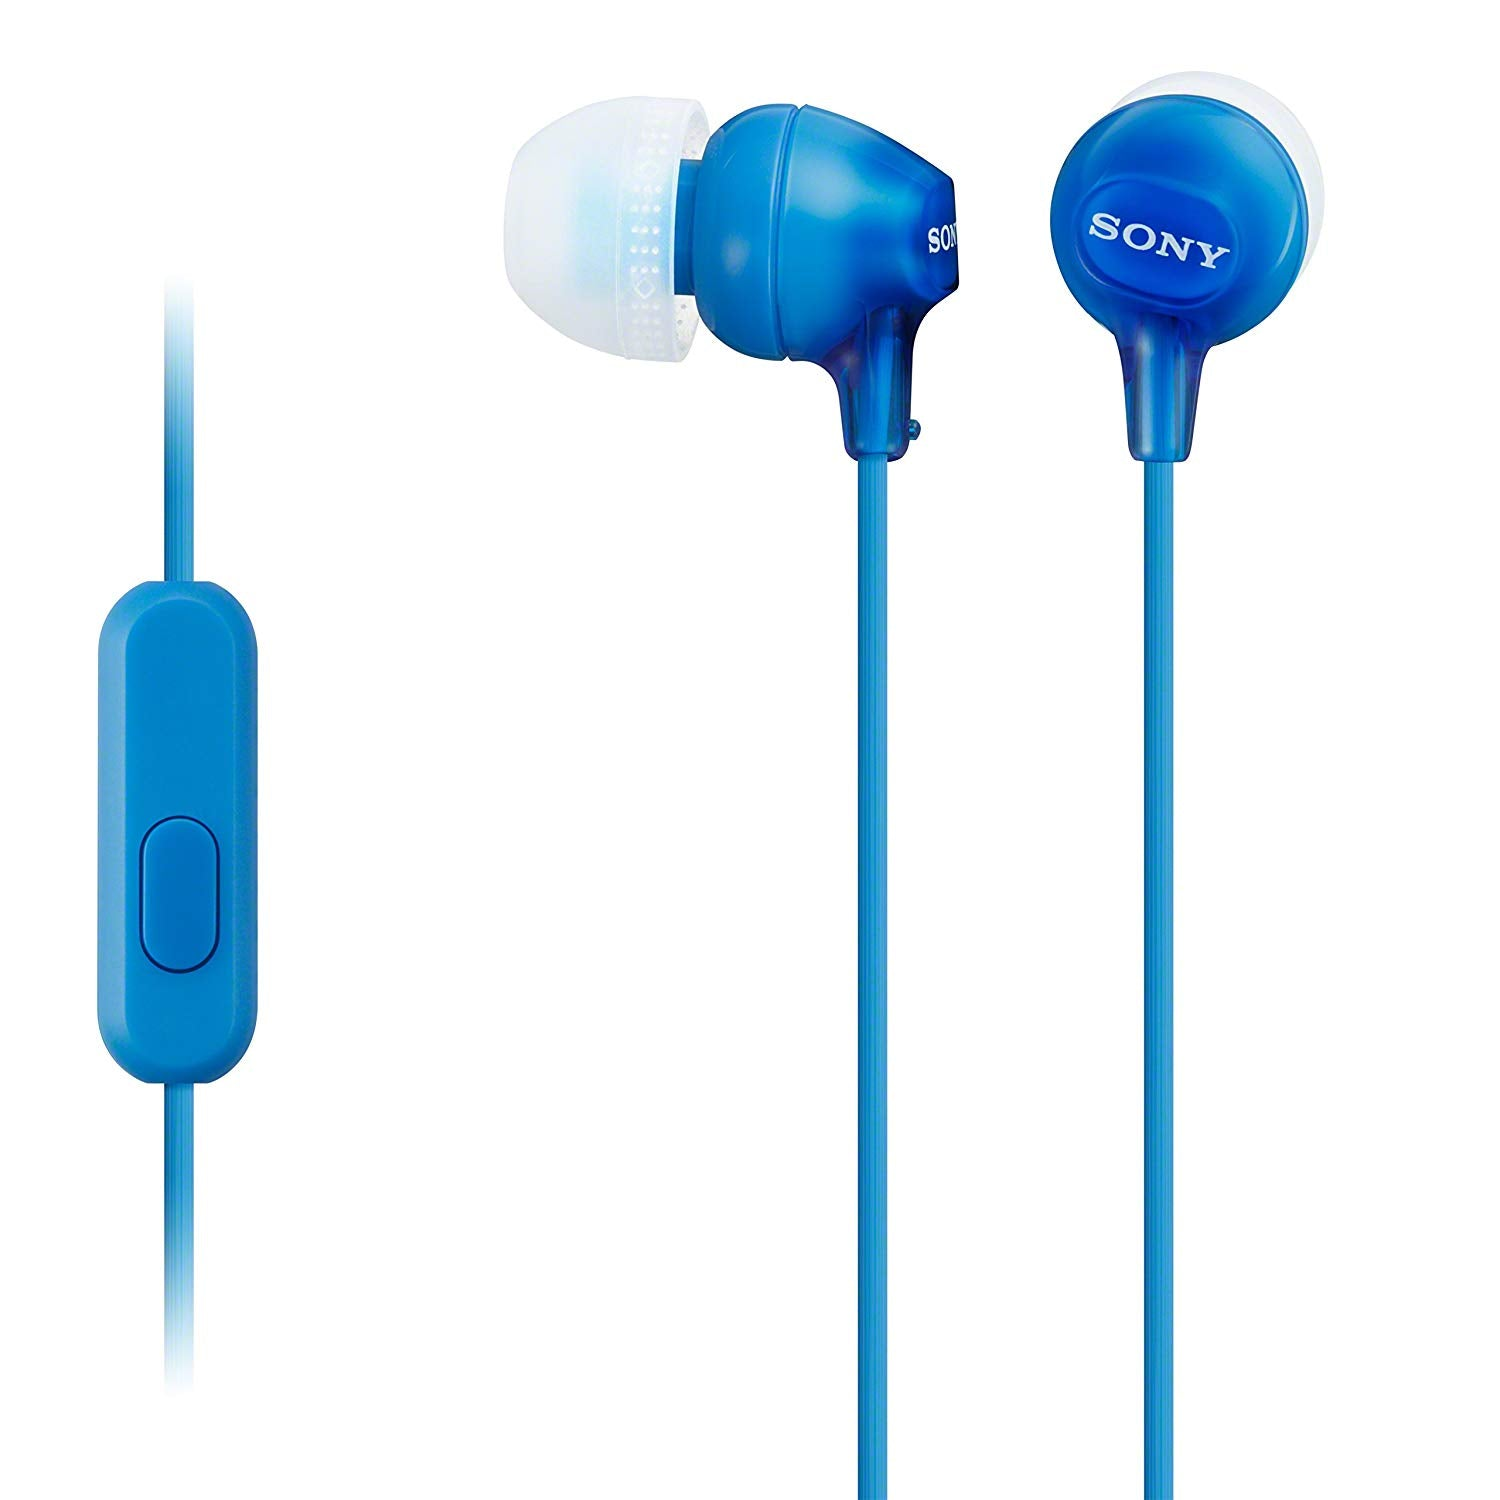 Sony MDR-EX15AP Earphones with Smartphone Mic and Control - Blue [Accessories]